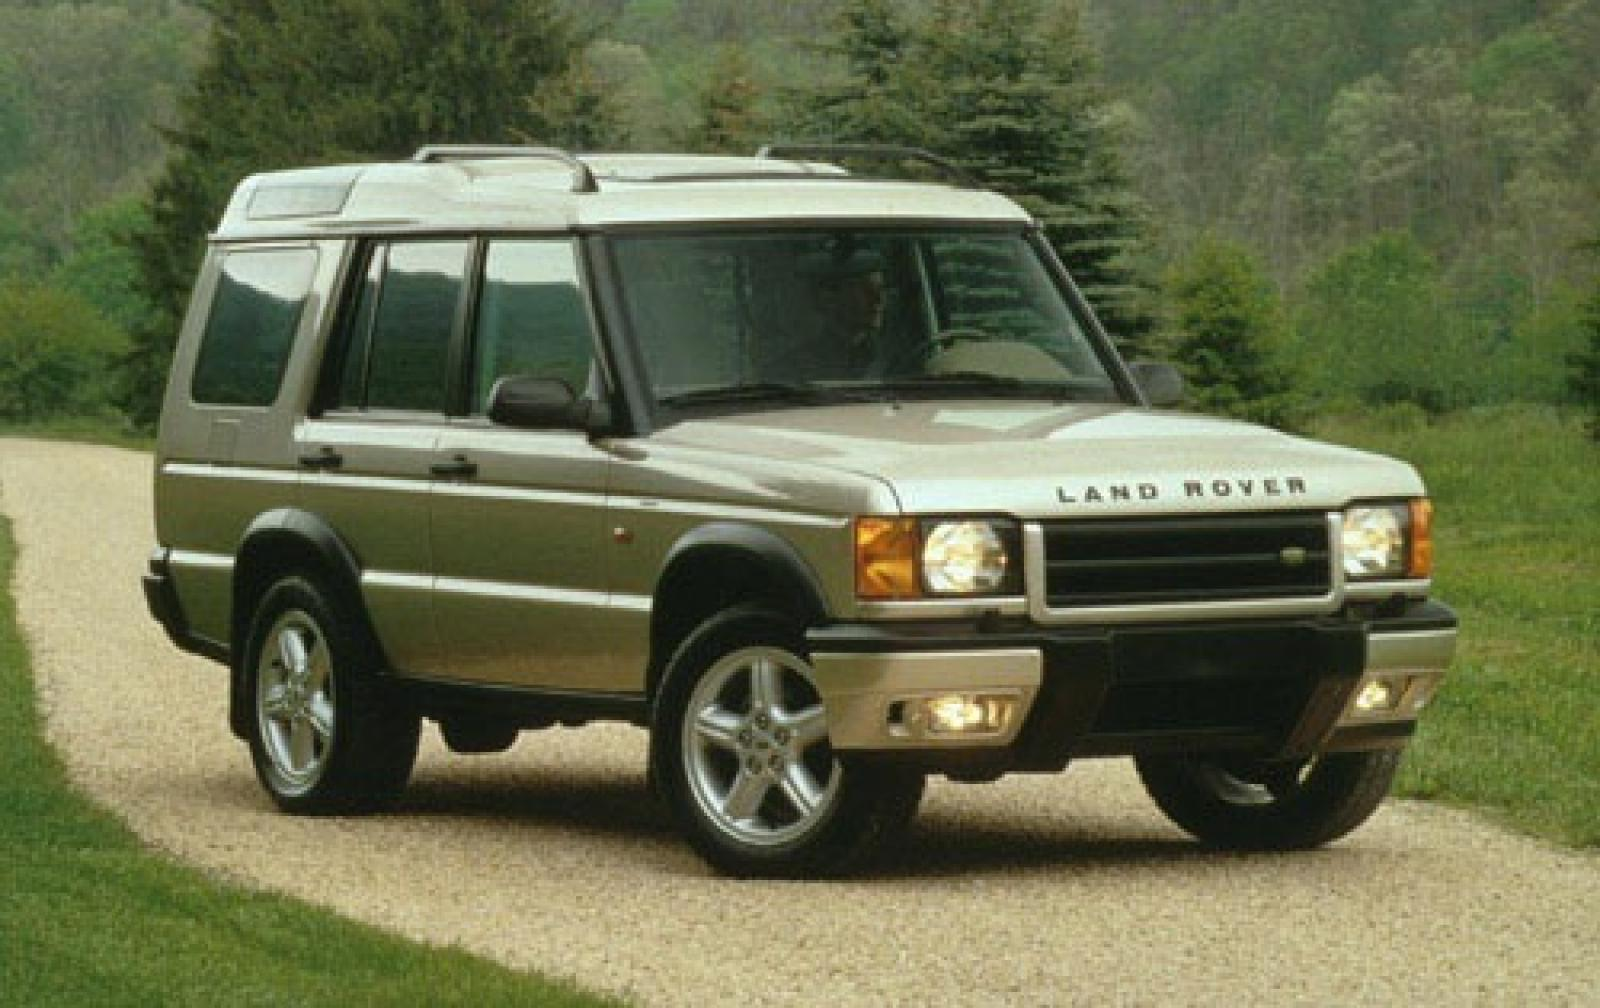 2001 land rover discovery series ii information and photos zombiedrive. Black Bedroom Furniture Sets. Home Design Ideas